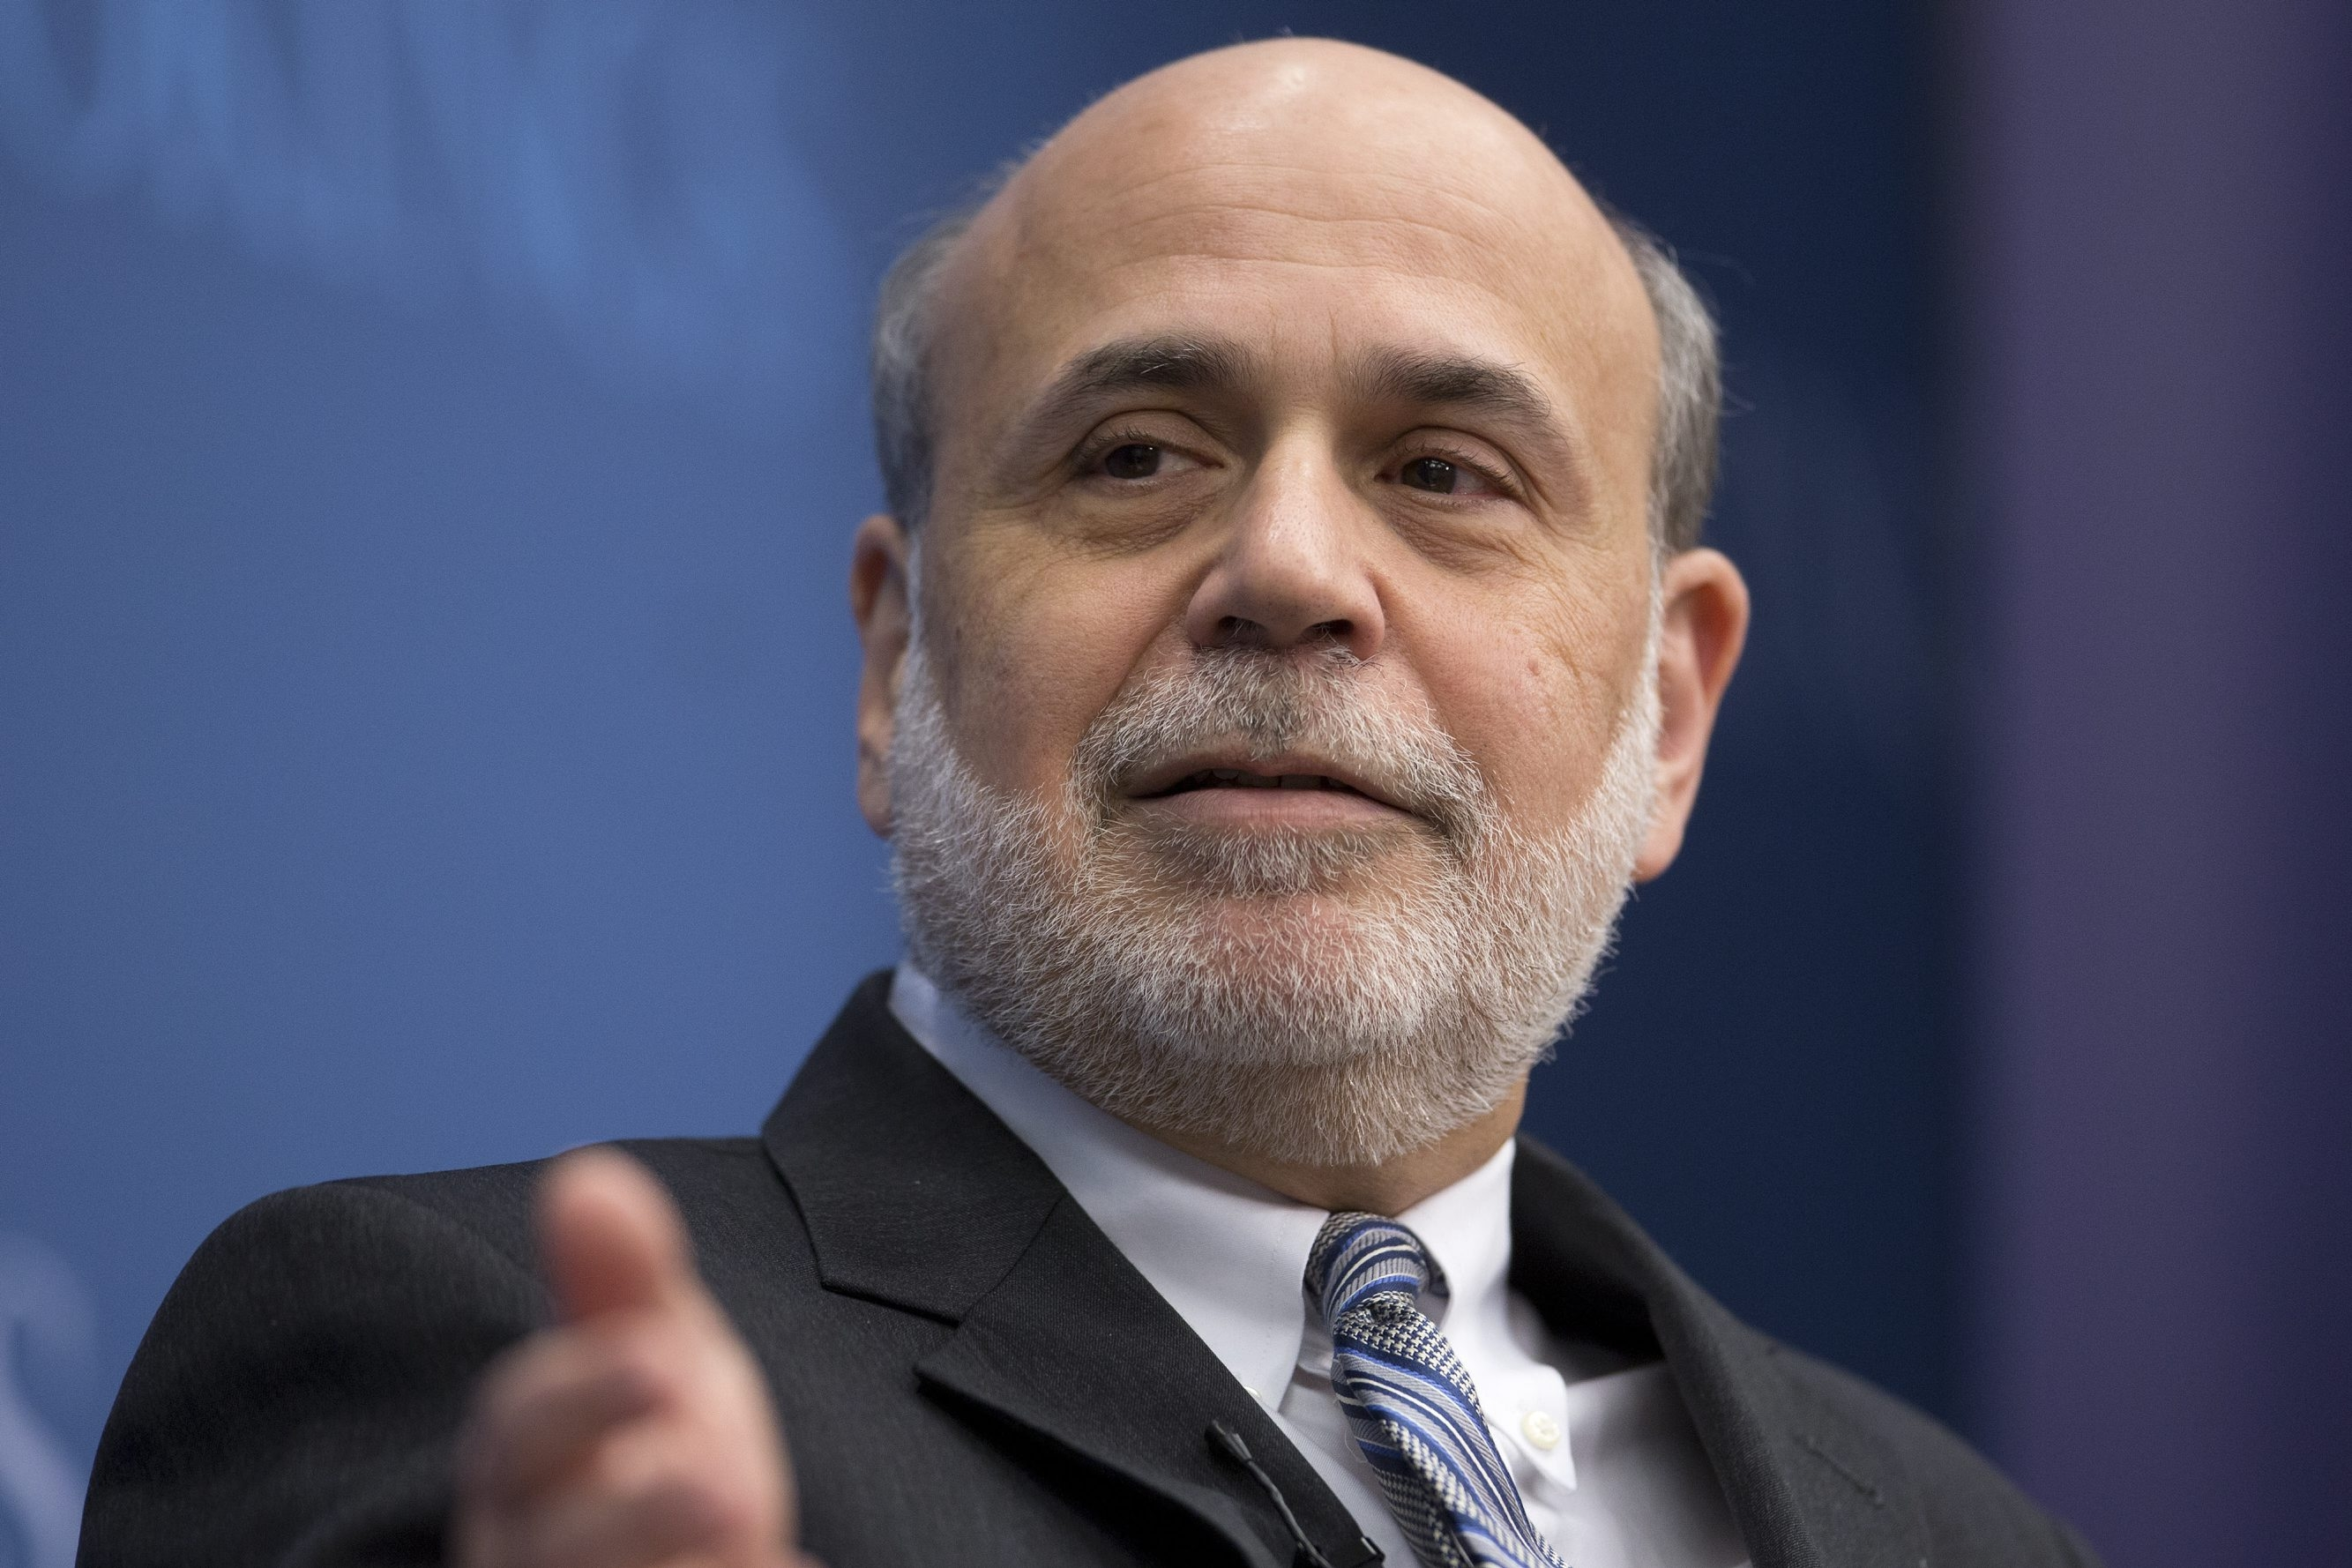 Ben S. Bernanke, former chairman of the U.S. Federal Reserve, is poised to make millions of dollars this year from speaking engagements.